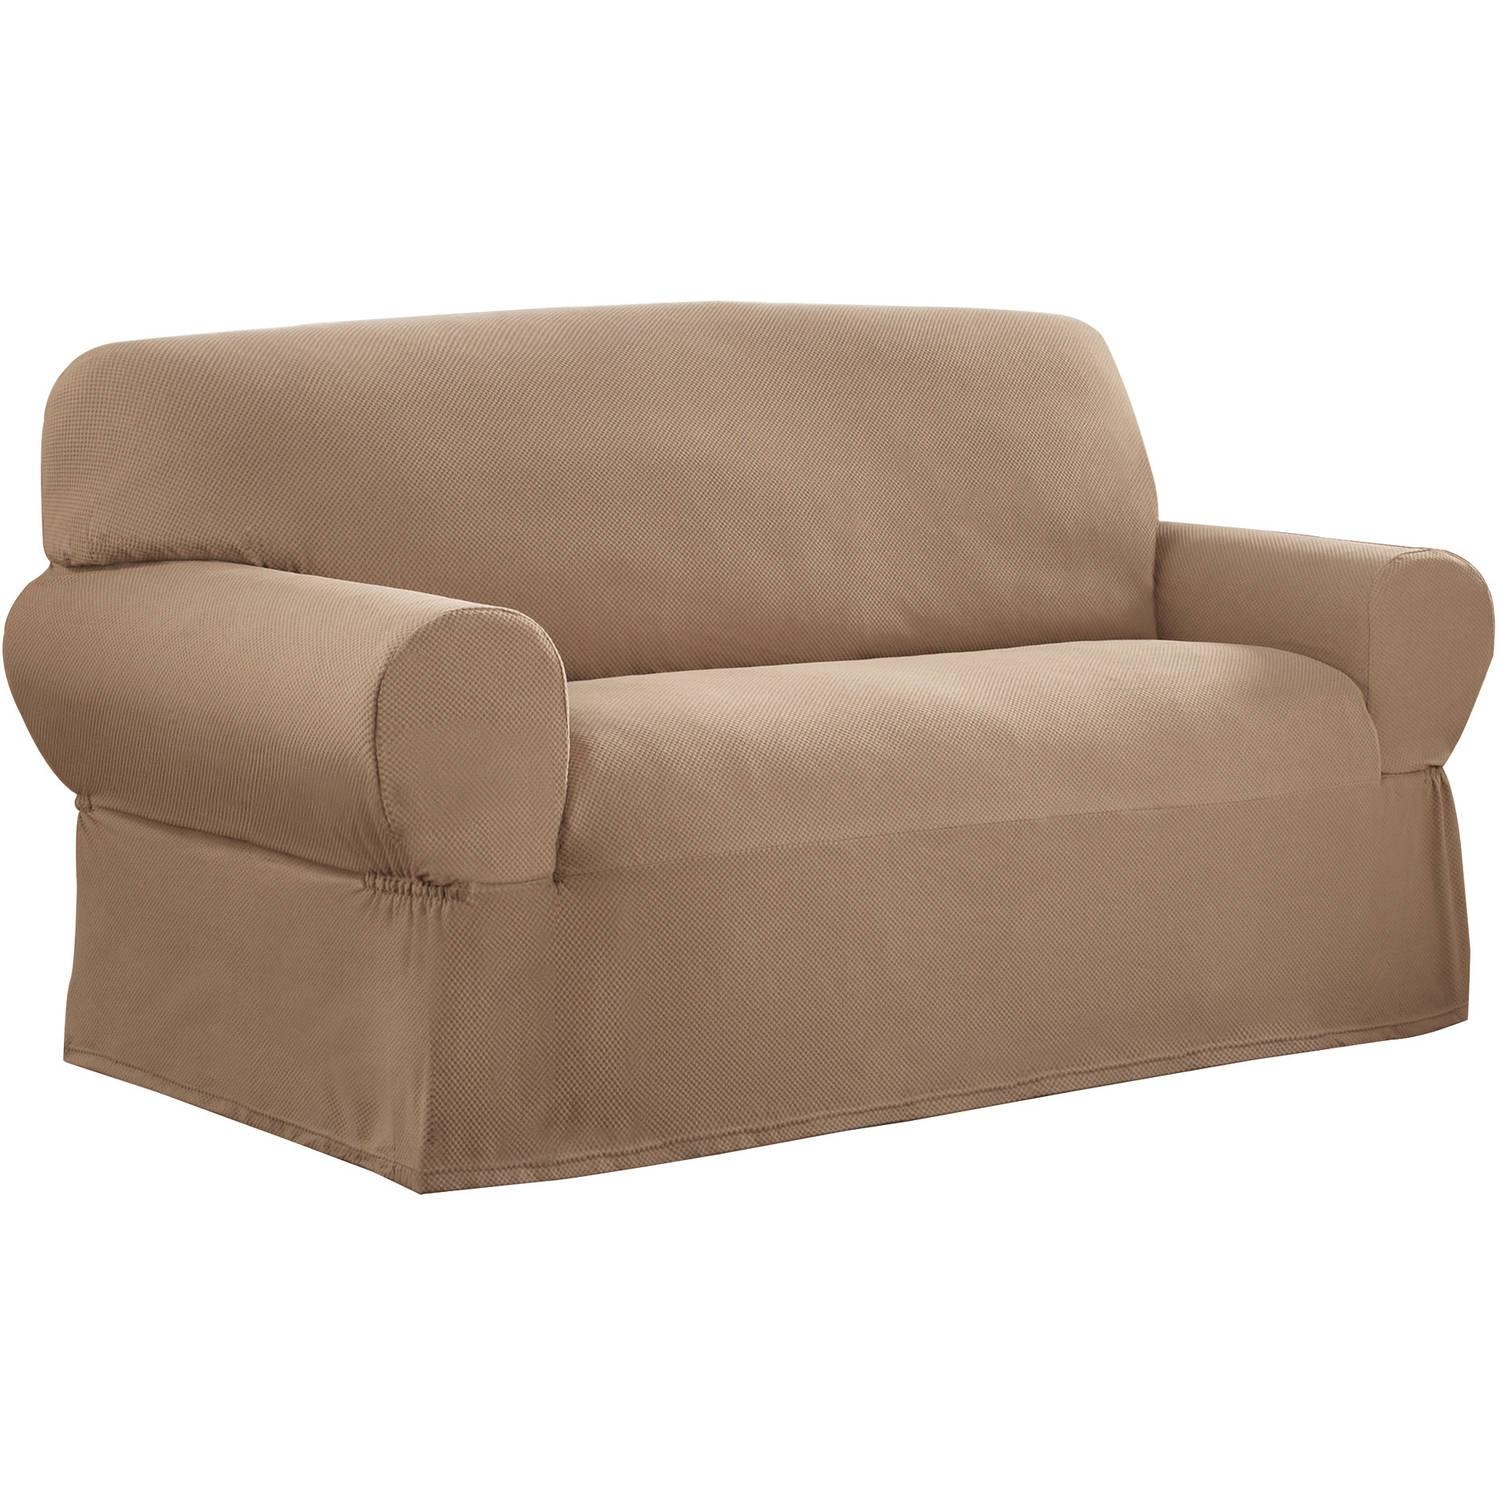 20 top loveseat slipcovers t cushion sofa ideas Loveseat t cushion slipcovers